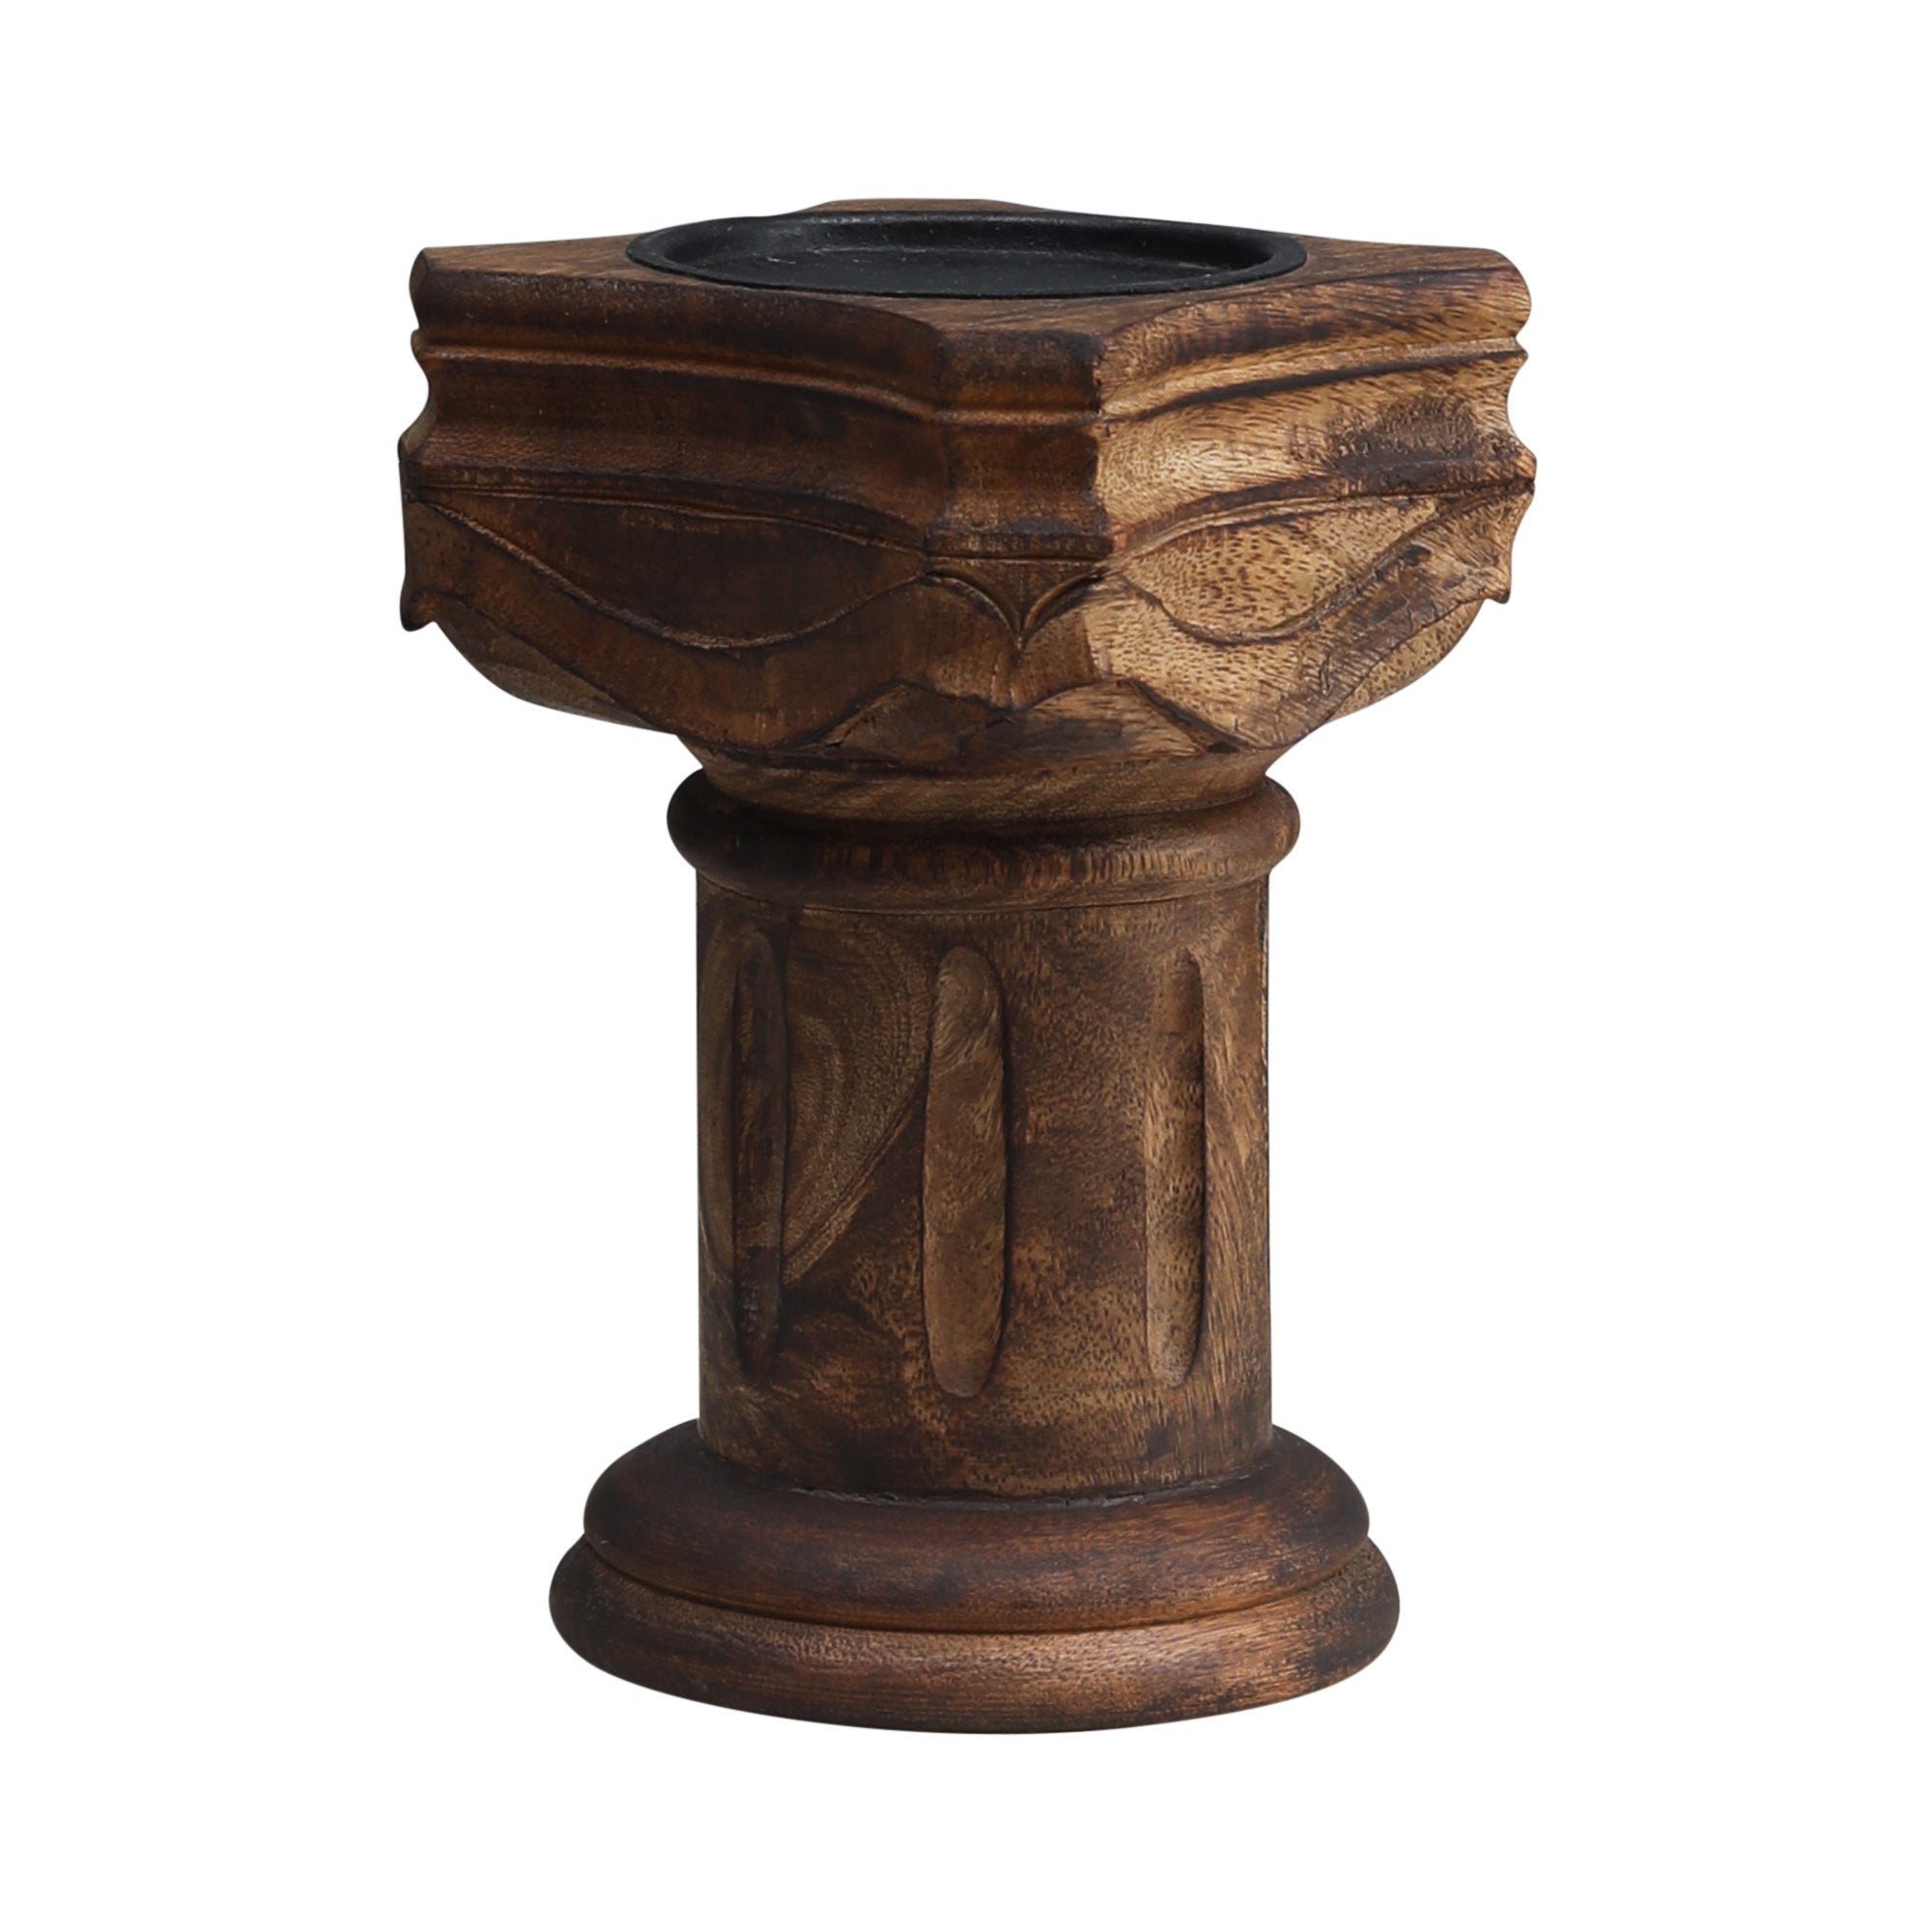 The Rook - Handcarved Candle Stand